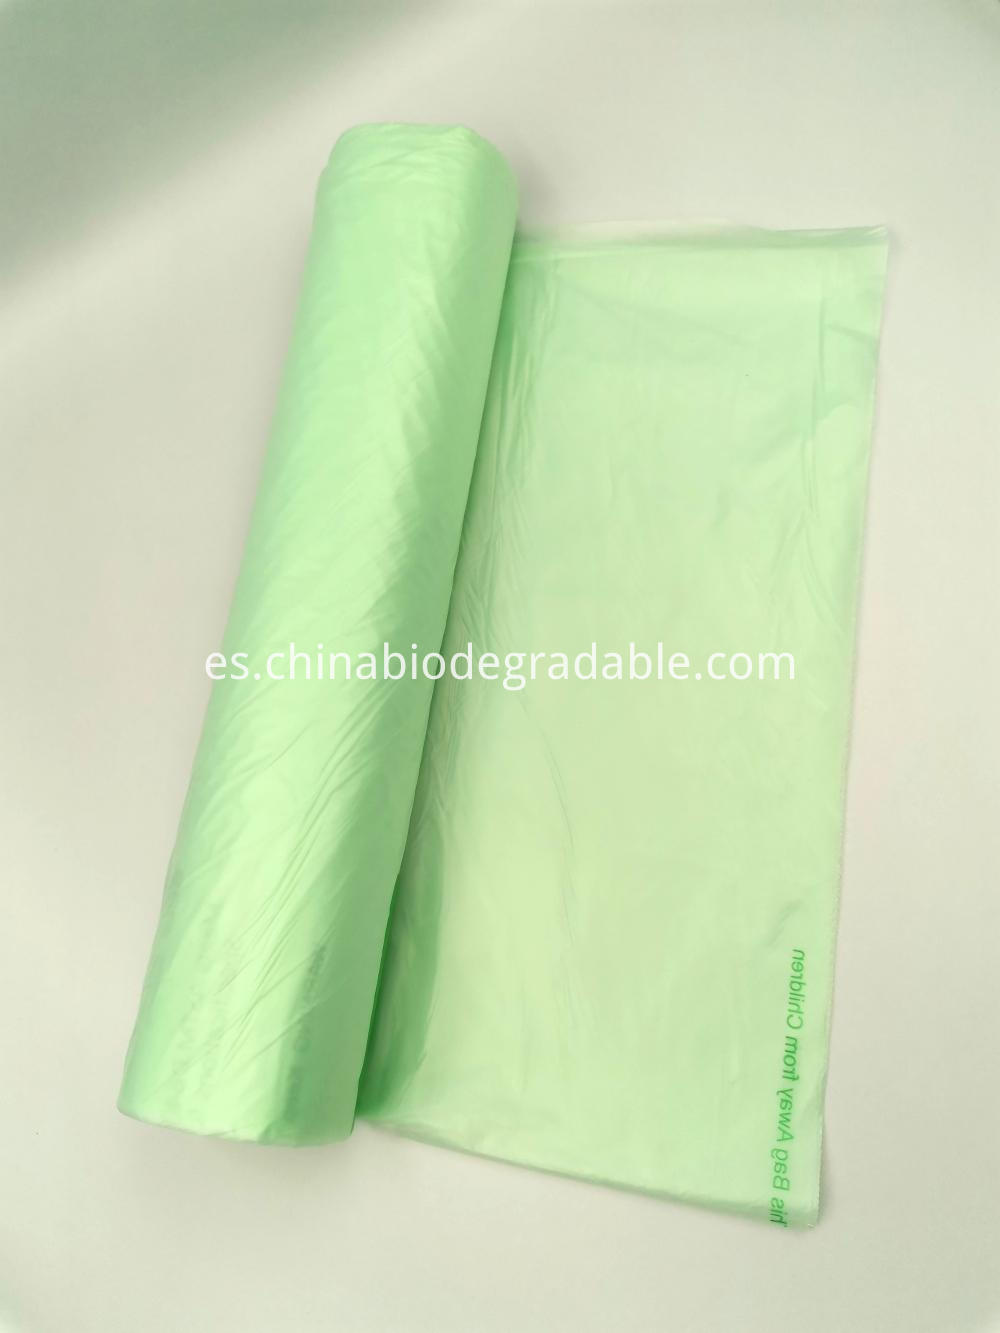 Bio Degradable Garbage Bags